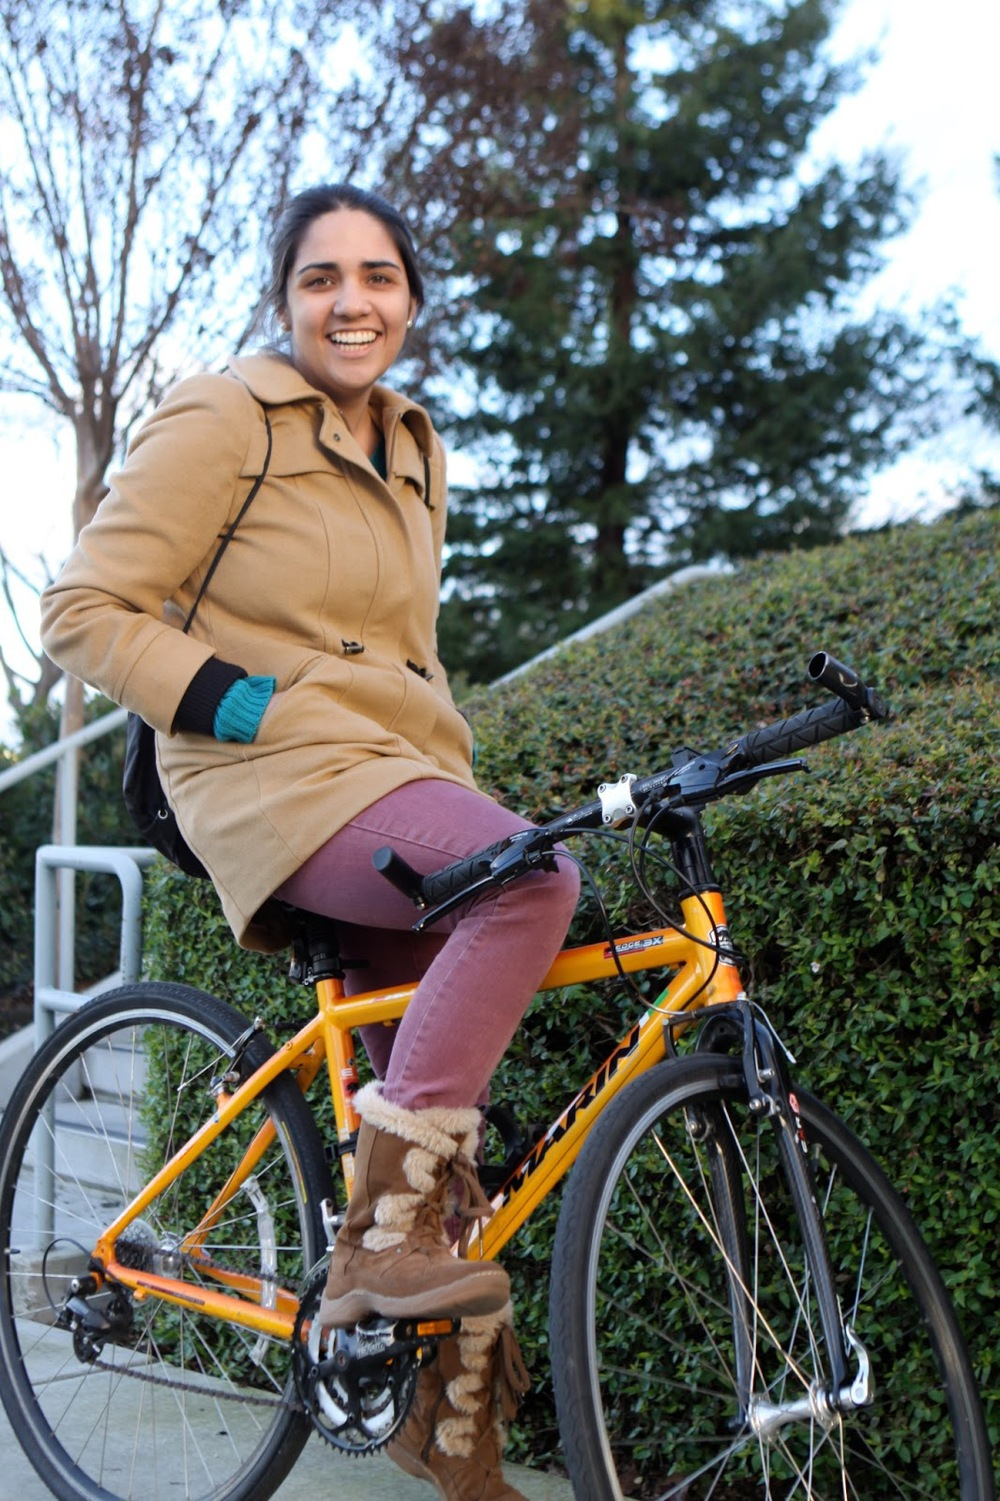 Katya, a Santa Clara University student wears light purple mauve jeans and a tan peacoat with fur-trimmed winter boots while she rides her bike.